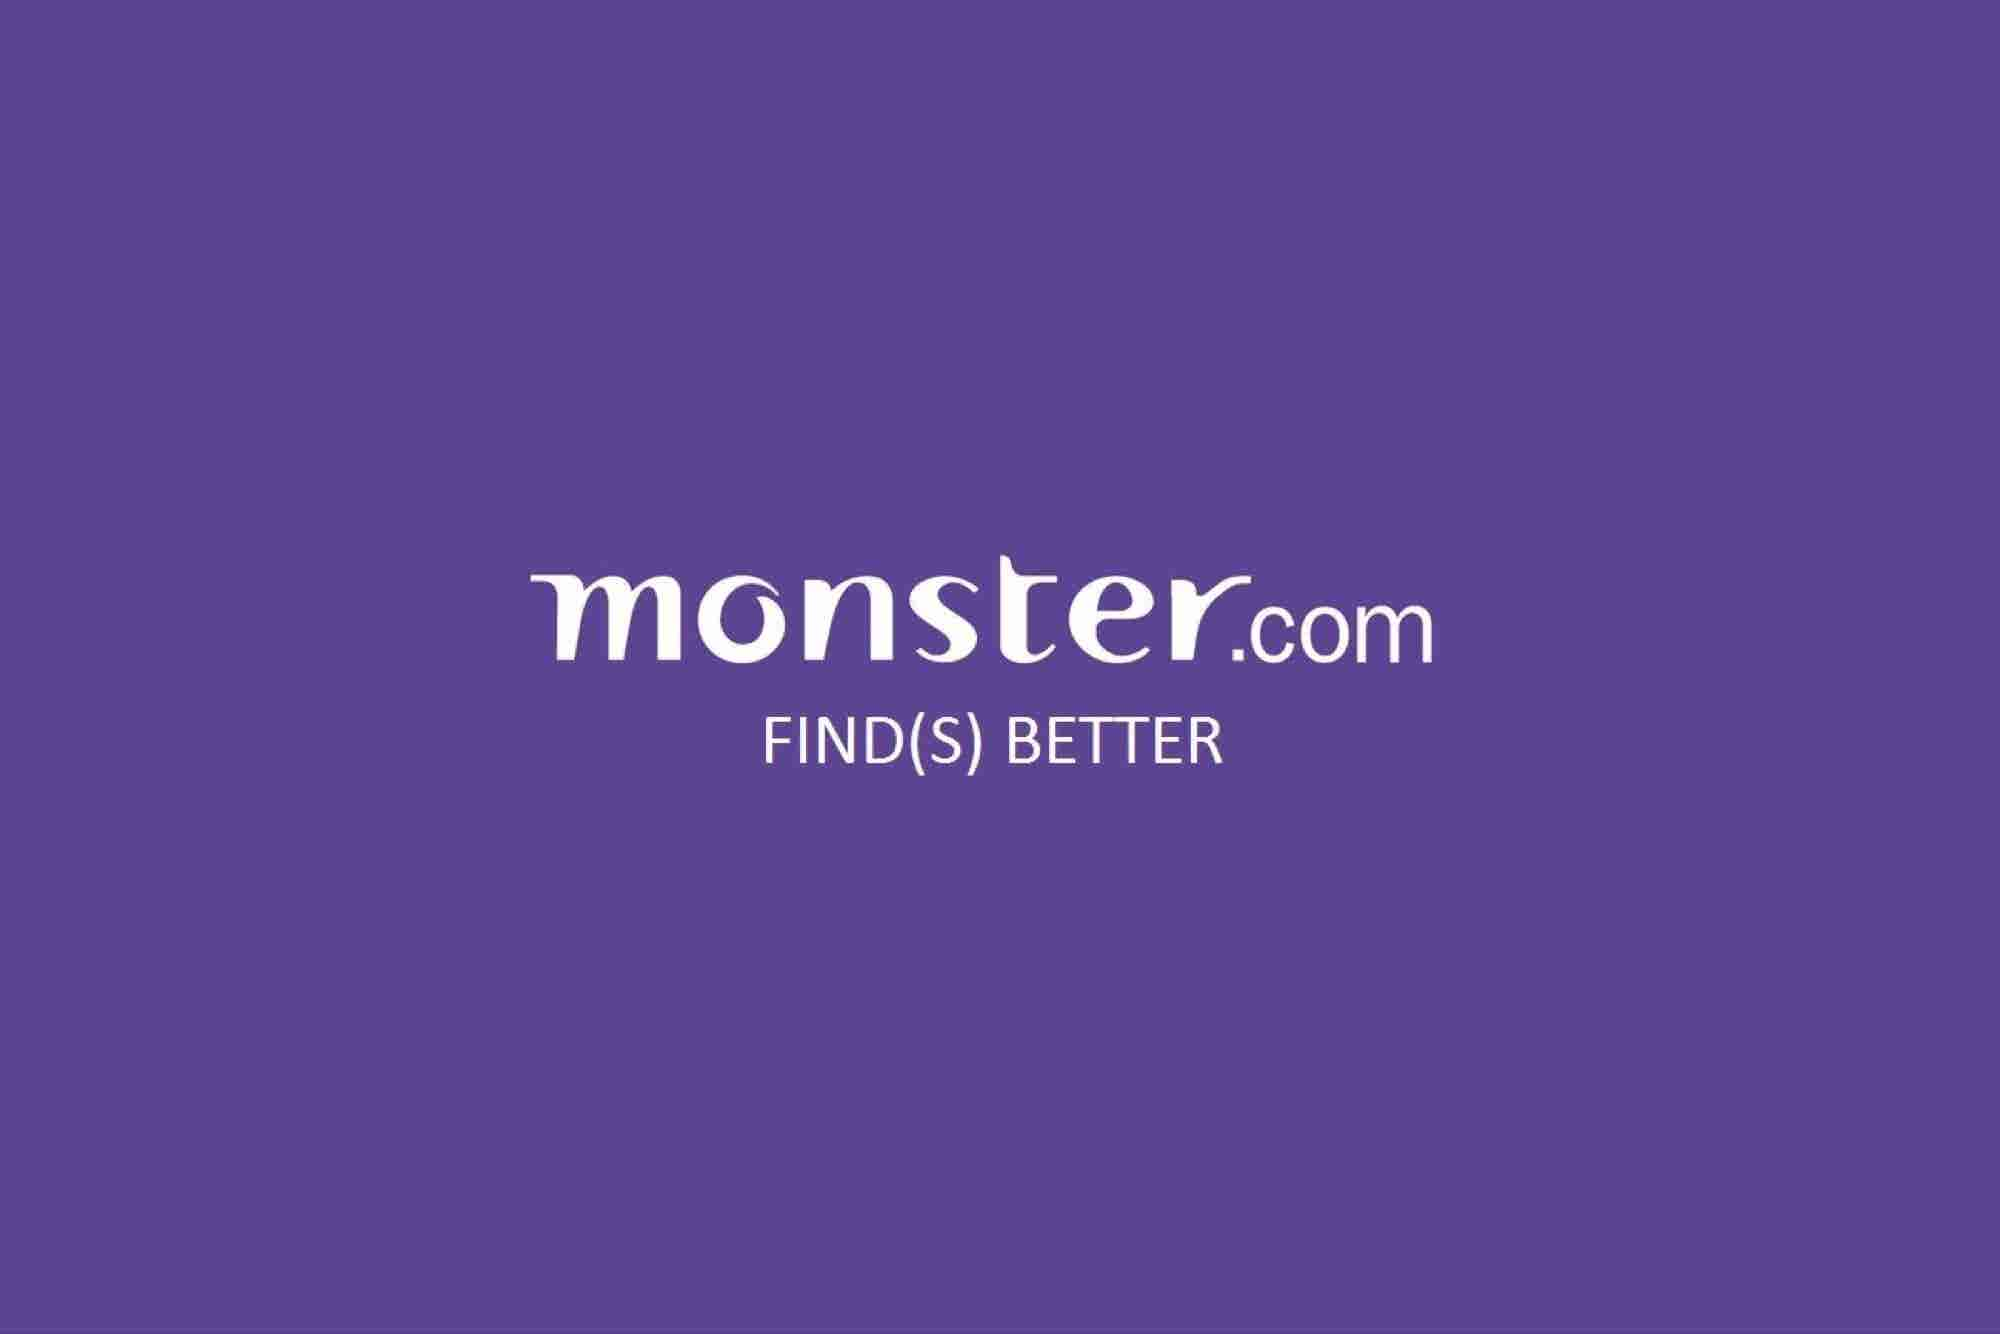 Monster 'Find(s) A More Meaningful Existence' In Randstad